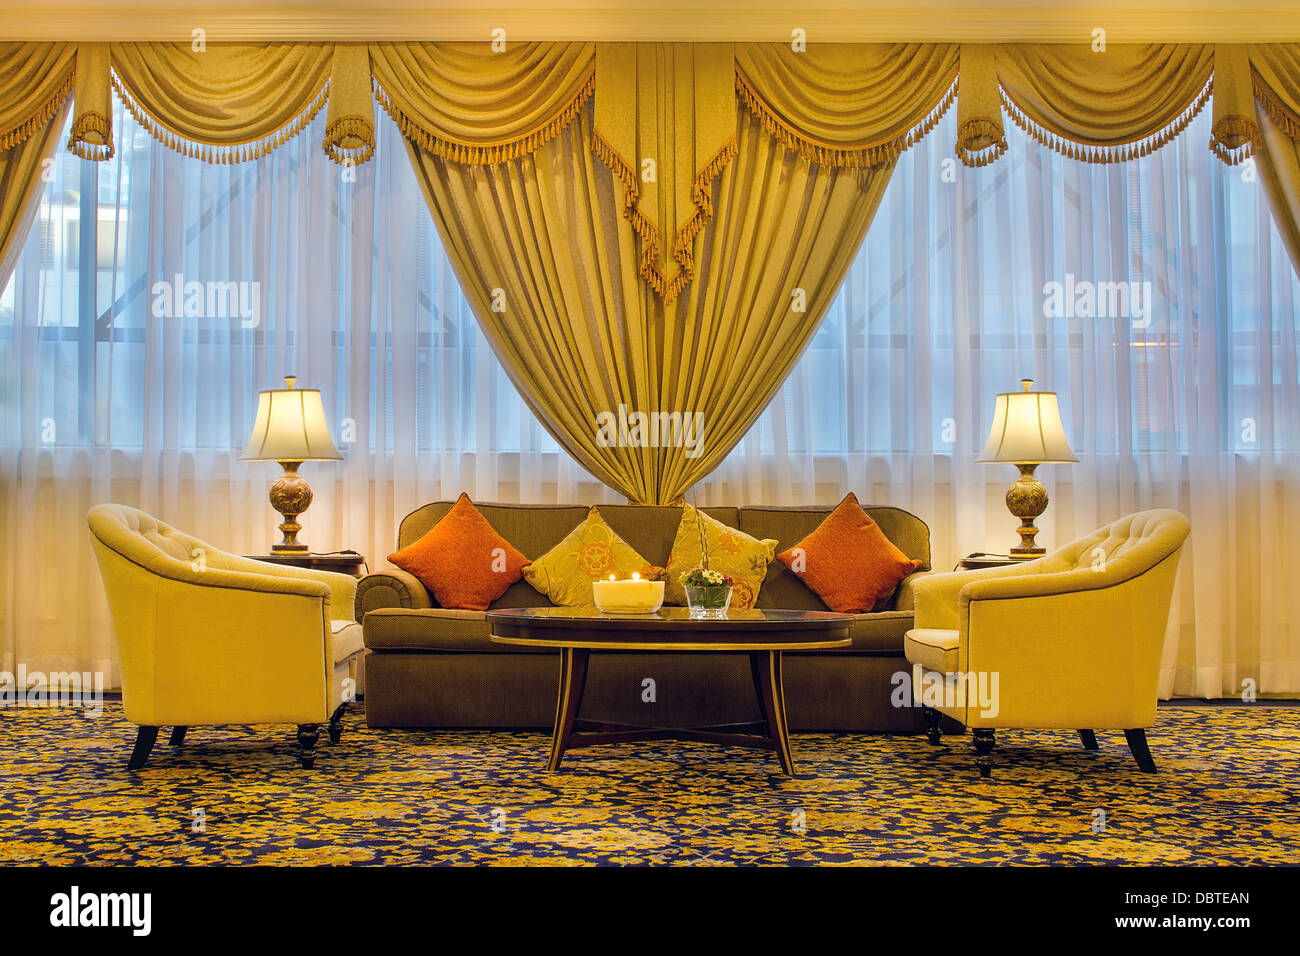 Living Room With Ornate Curtains Chairs Couch Side Table Lamps